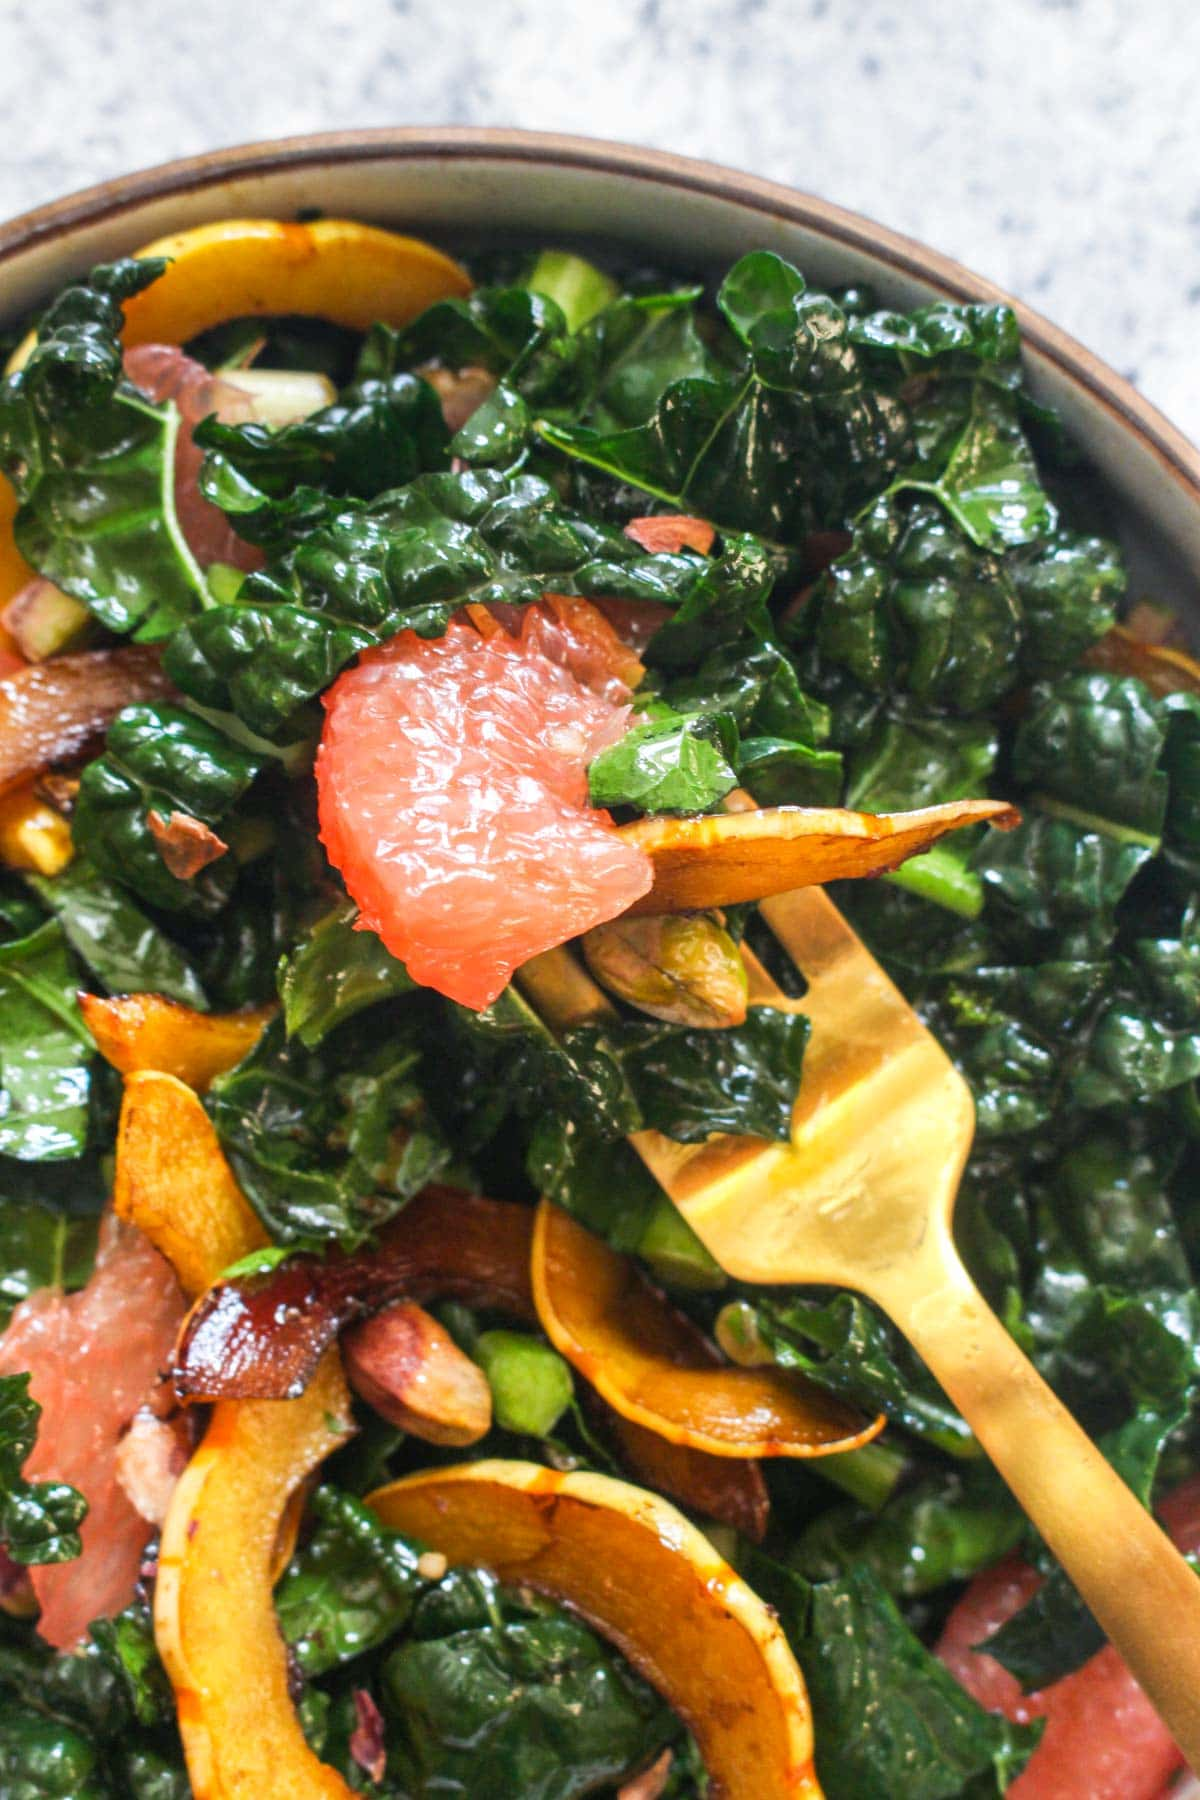 This Winter Kale Salad Recipe is loaded with fresh seasonal flavors! Grapefruit, balsamic delicata squash, pistachios, and a zippy dressing are combined in this healthy and fresh side dish. Easy to make and ready in 30 minutes! Paleo, gluten free, dairy free, vegan, and grain free! | CatchingSededs.com